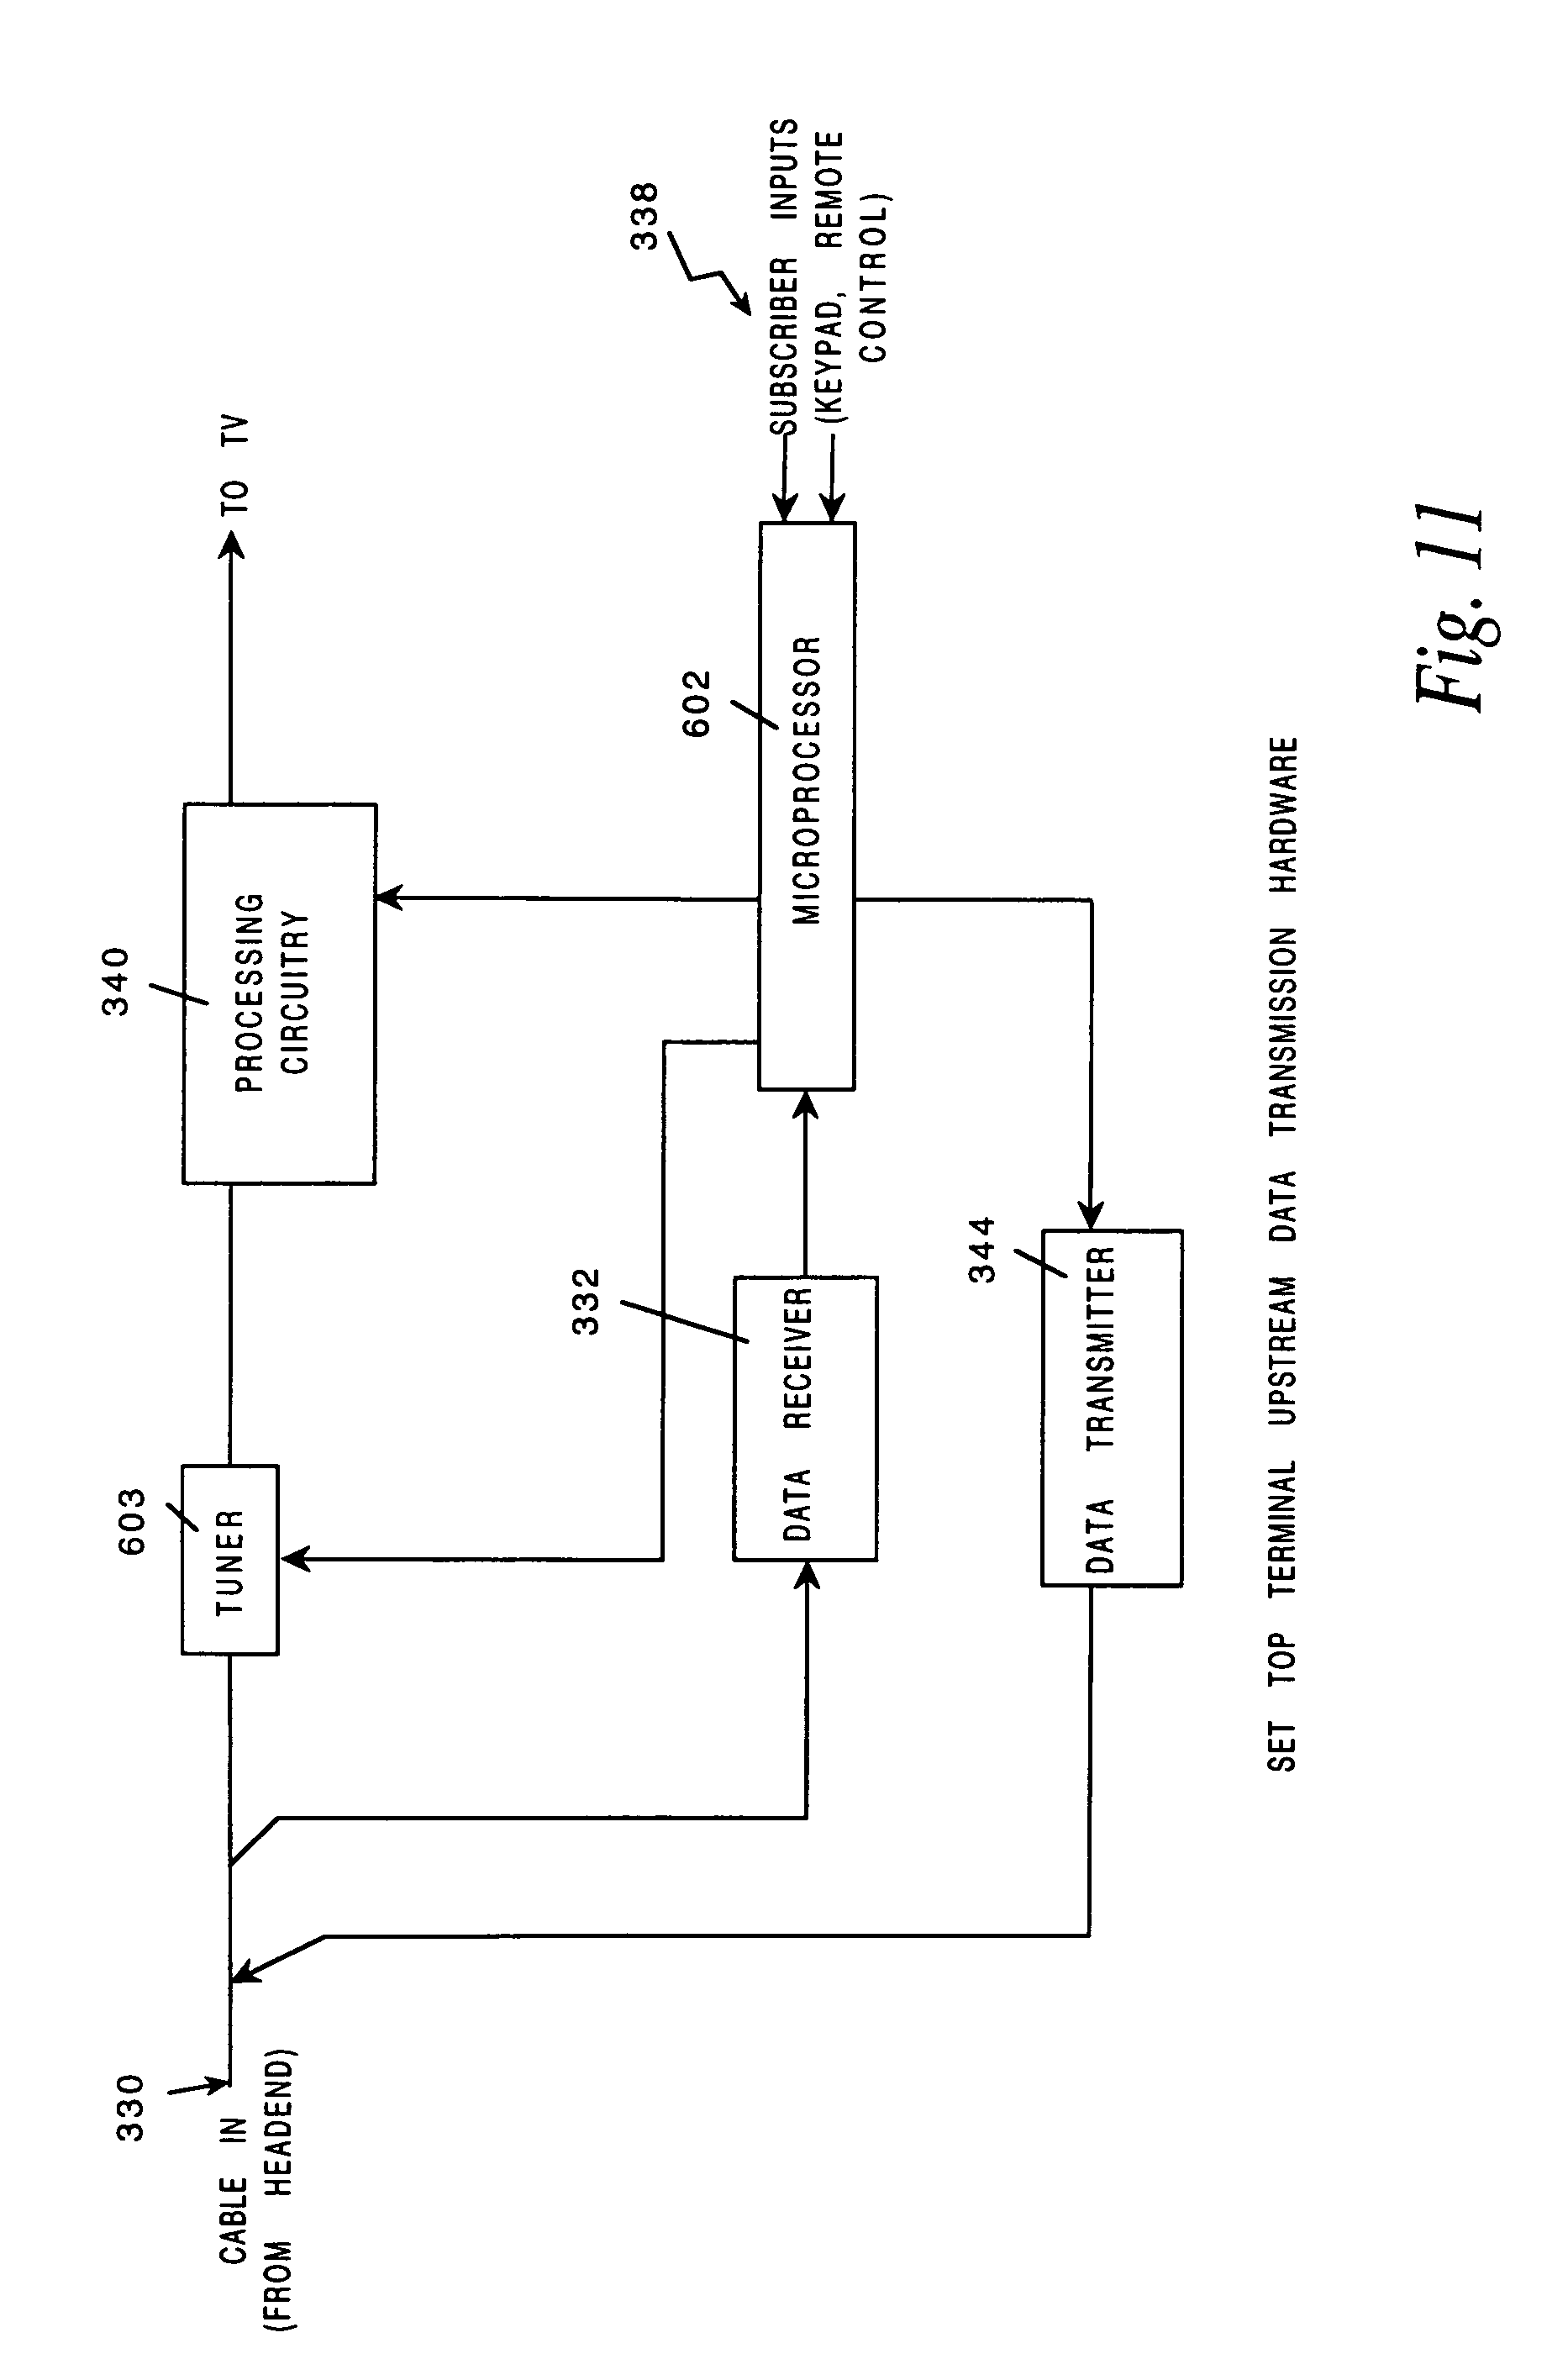 Circuit Likewise Frequency Counter Diagram As Well Iptv Schematic Us8347345b1 Television Terminal Modem Google Patents